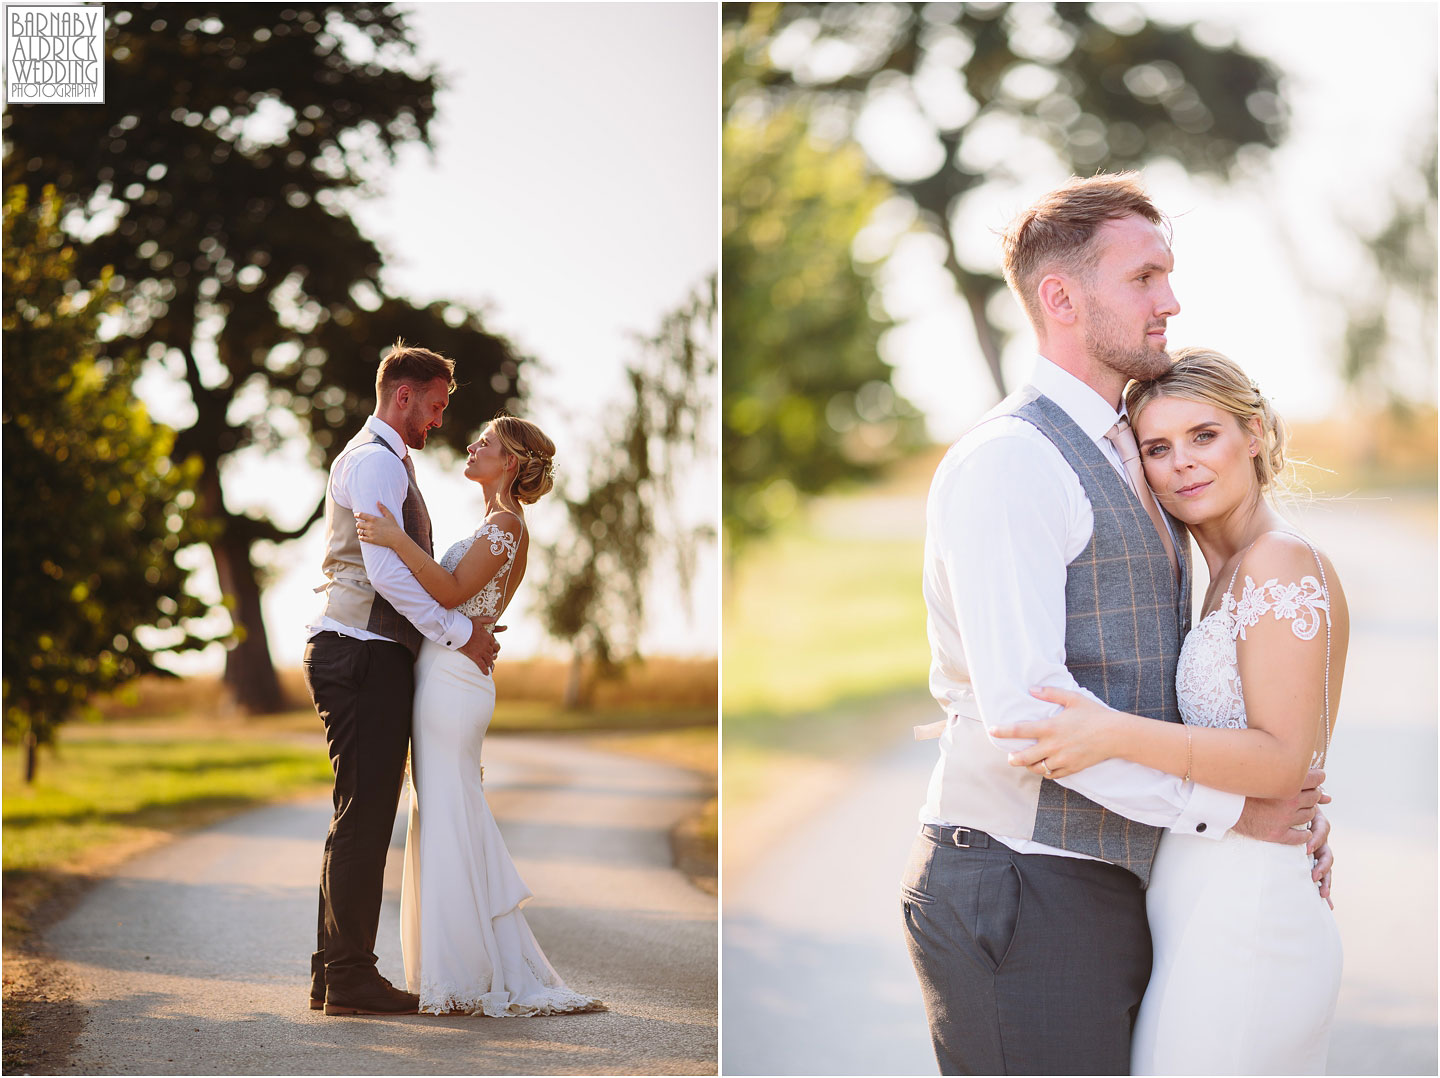 Wedding photography at Priory Cottages near Wetherby in Yorkshire